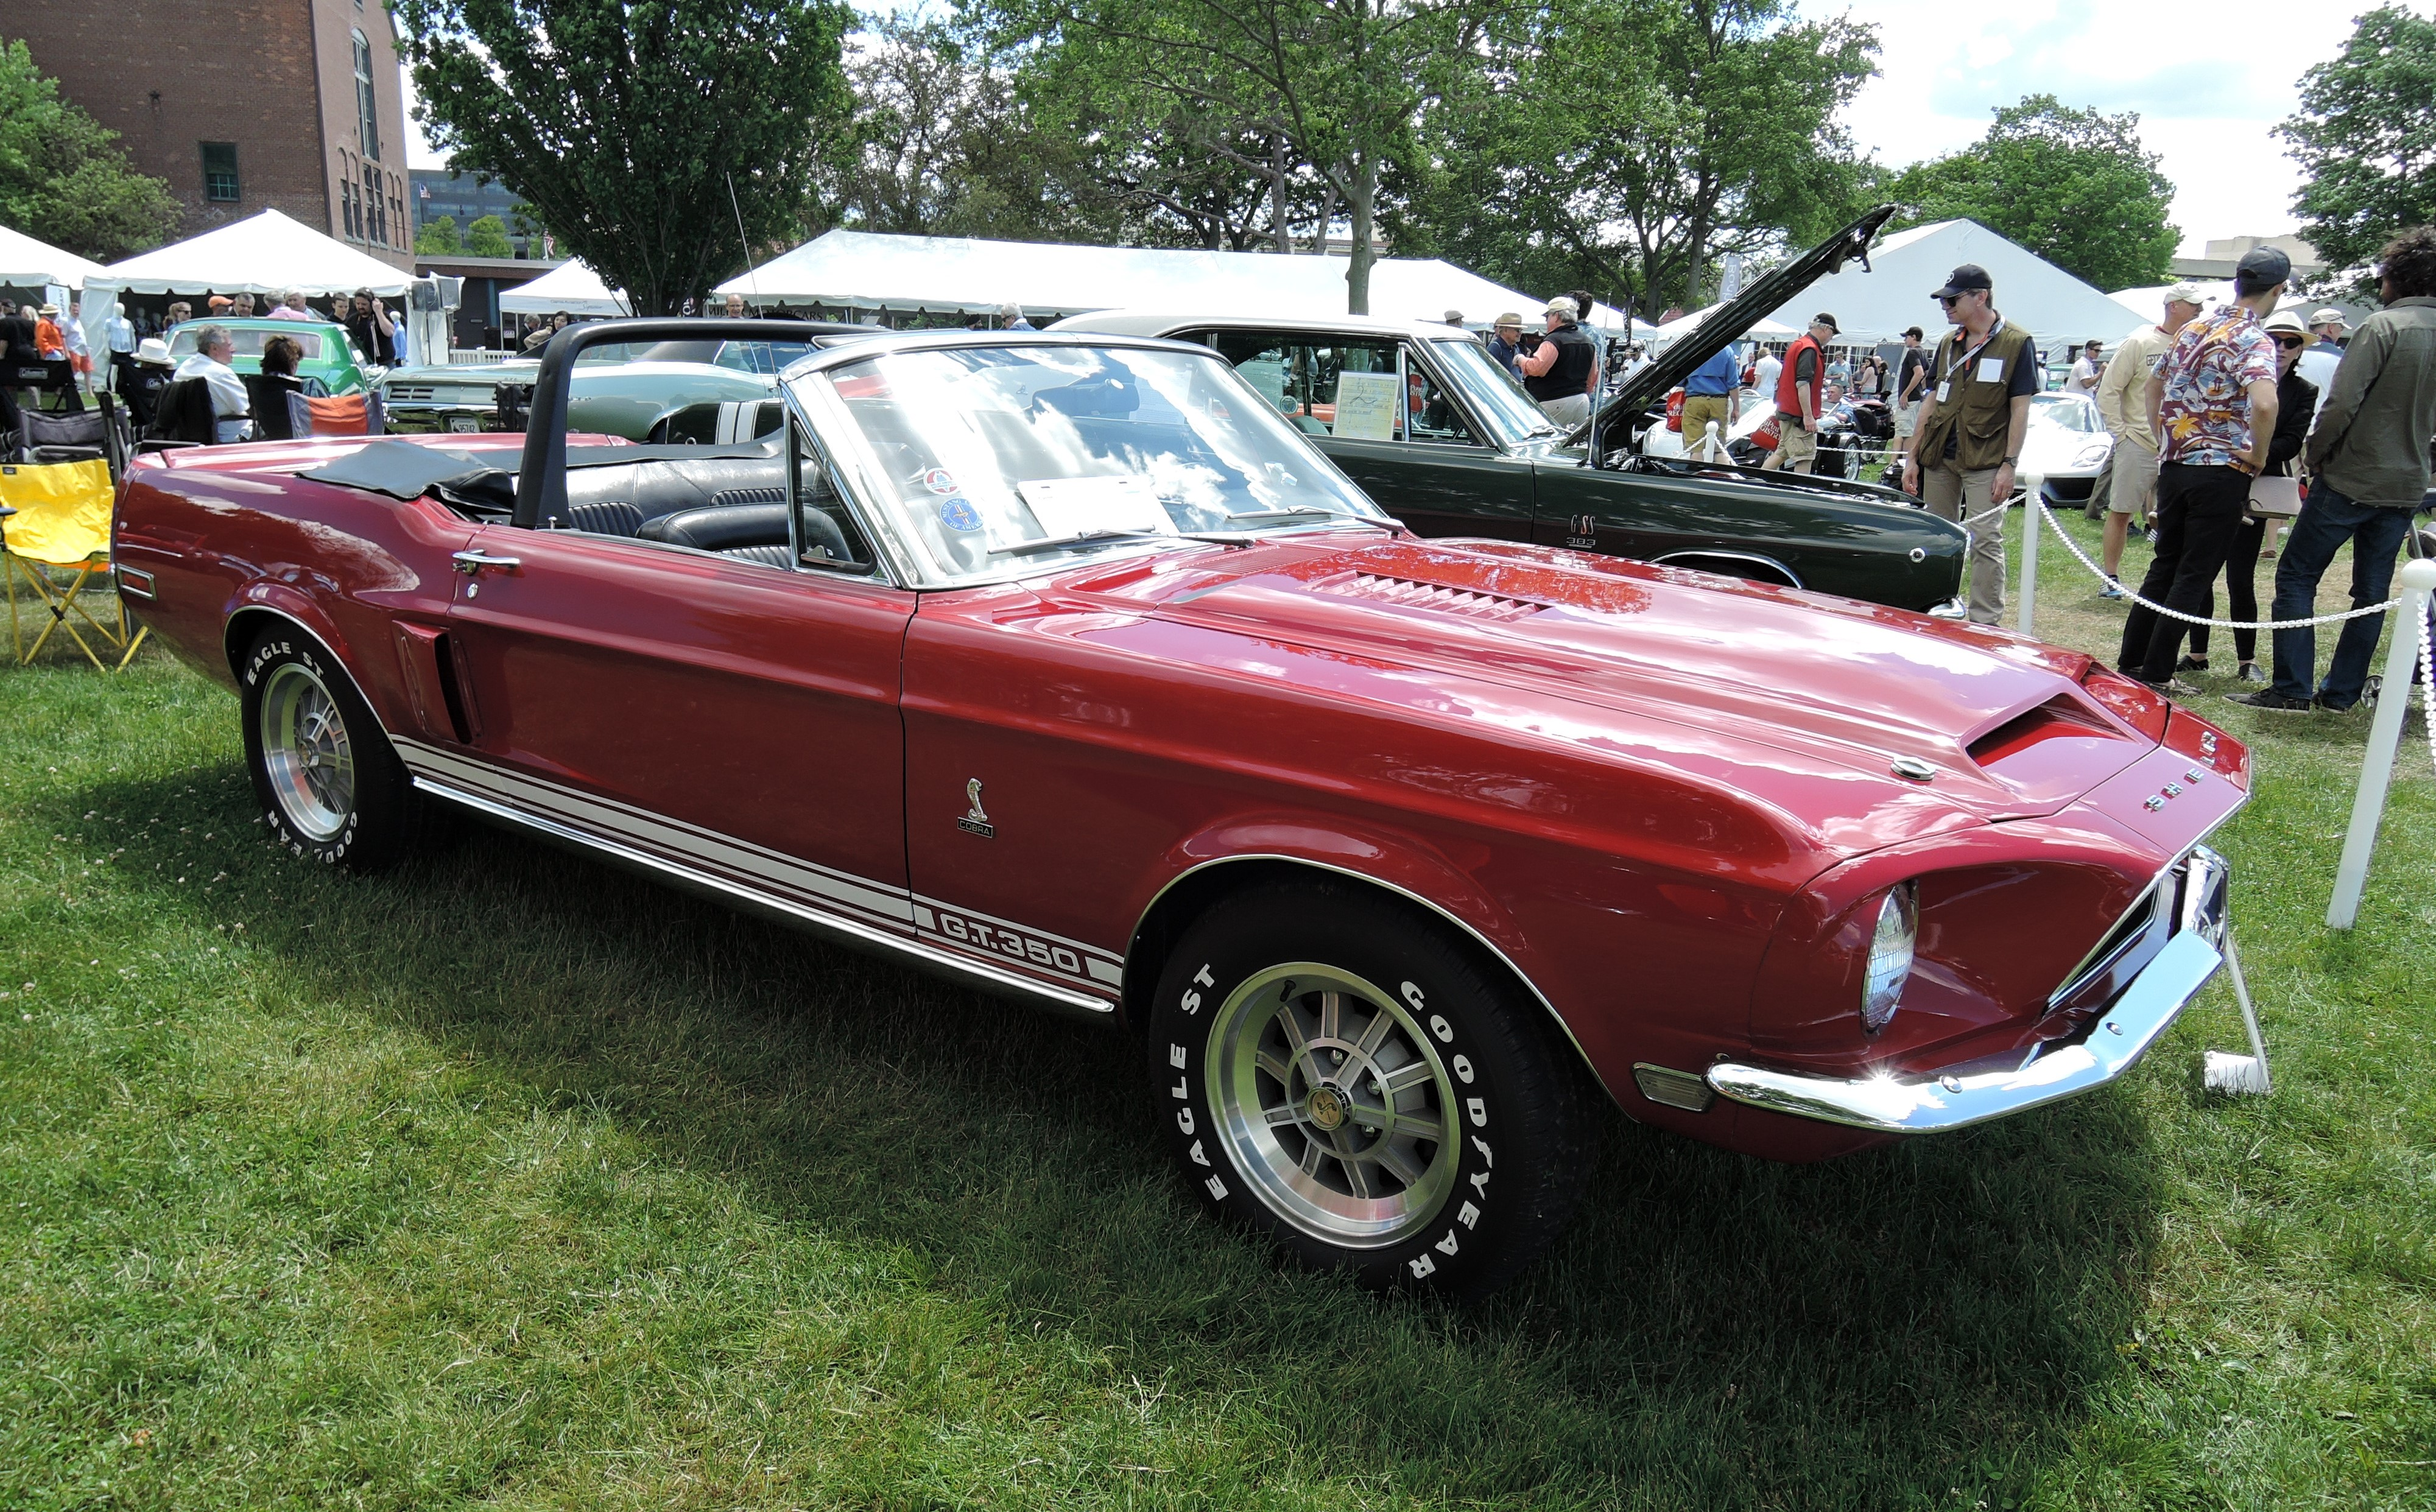 red 1968 Shelby Mustang GT350 - Greenwich Concours d'Elegance 2017